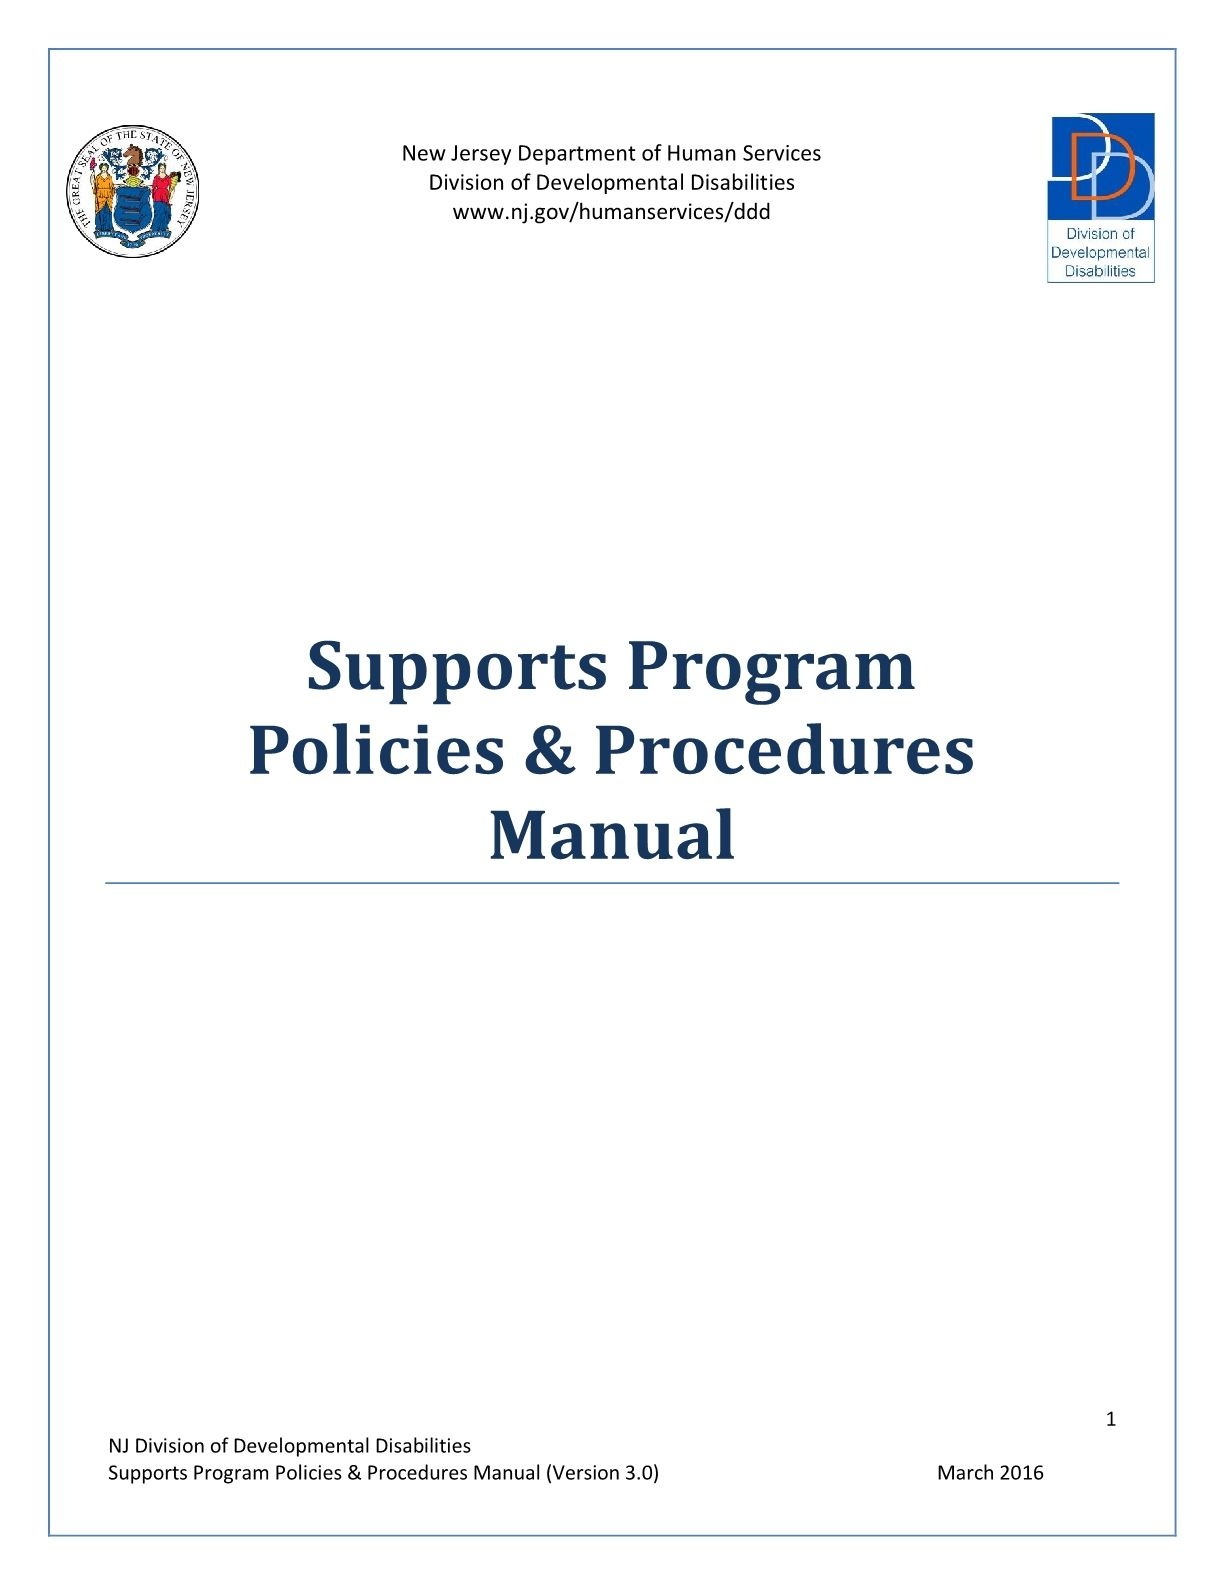 Supports Program Policies & Procedures Manual